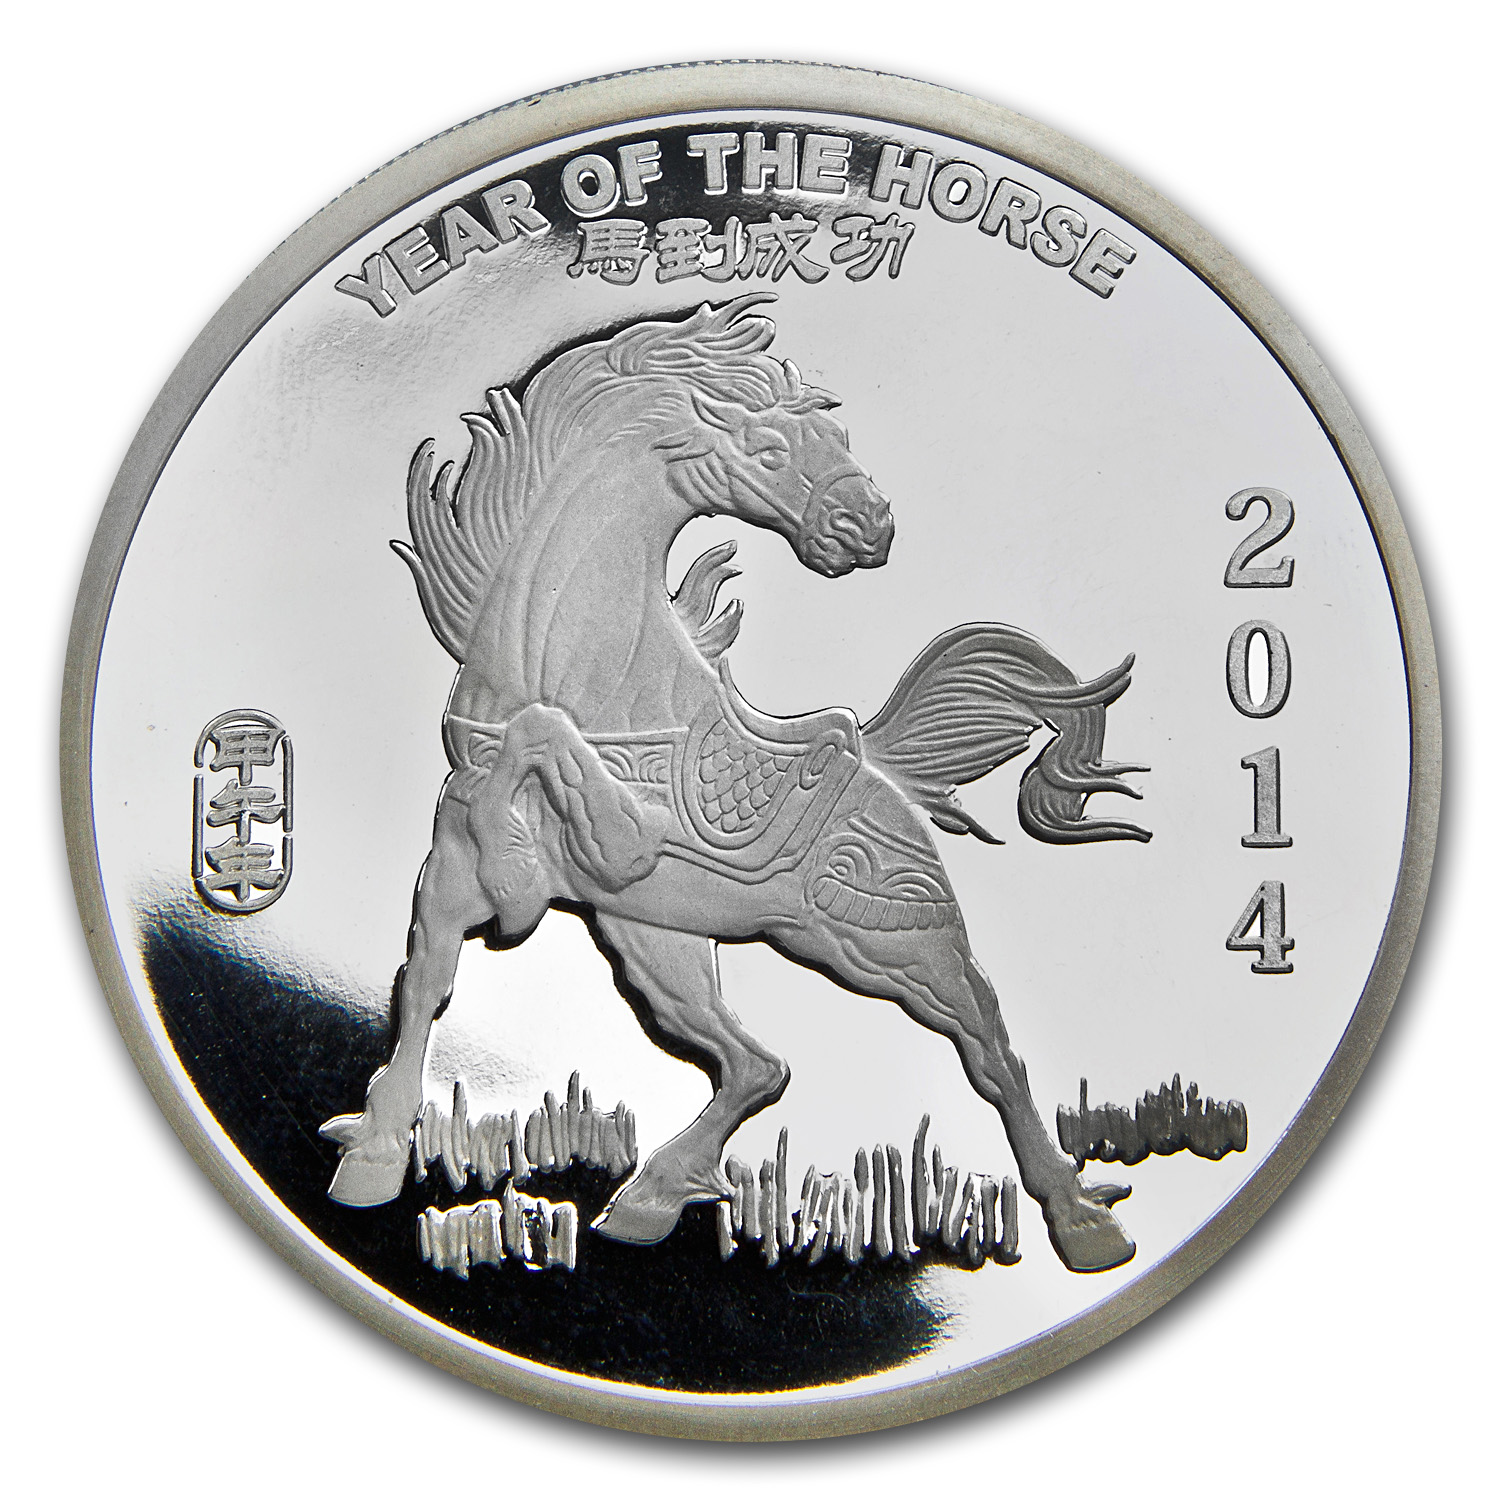 5 oz Silver Round - APMEX (2014 Year of the Horse)